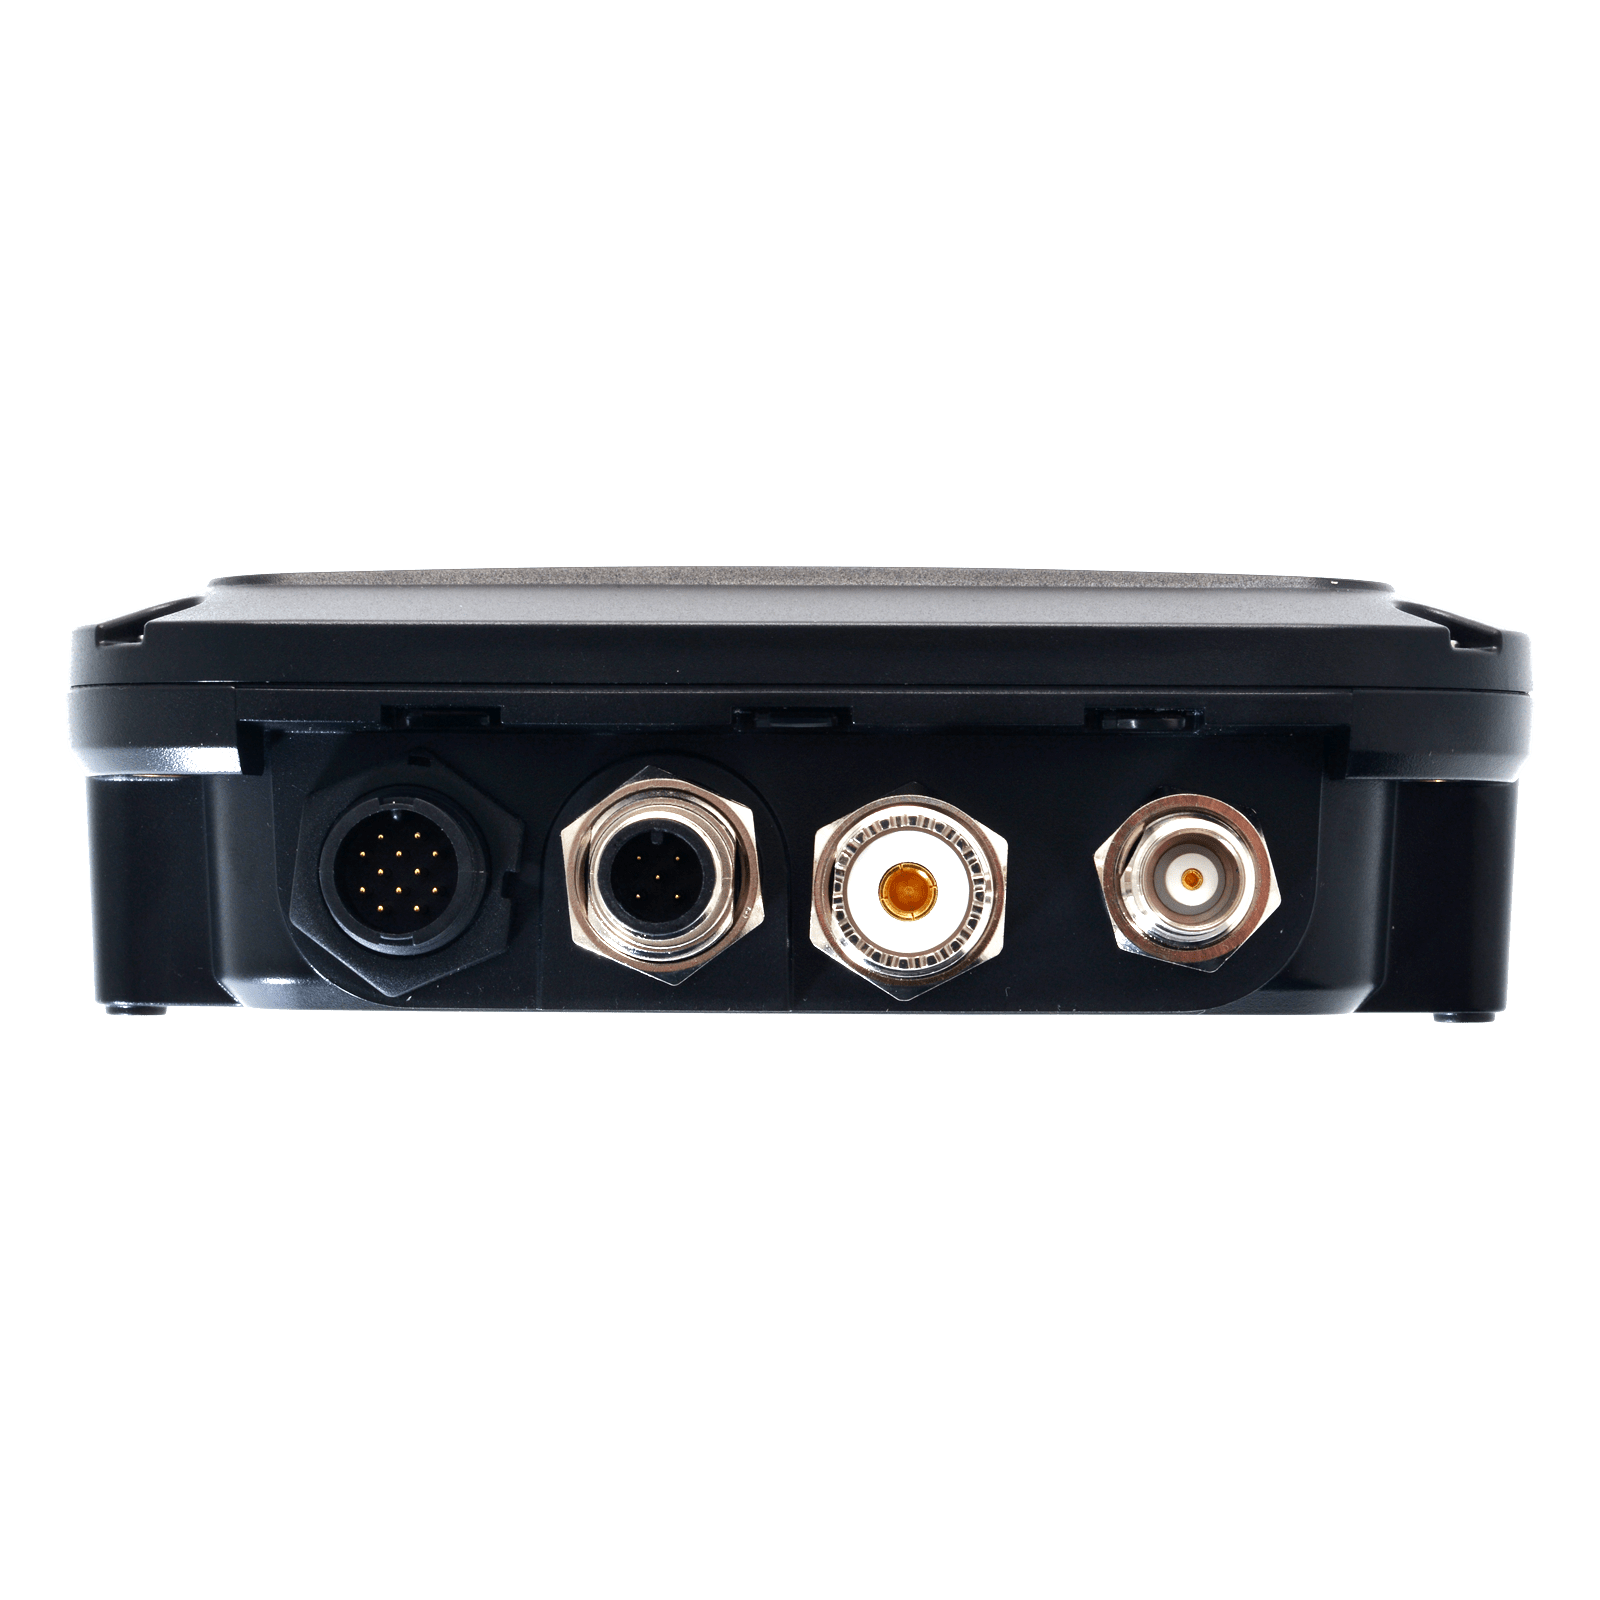 The em-trak B350 is a certified high powered AIS Class B transceiver that is ideal for those requiring enhanced AIS transmit capabilities with guaranteed seamless connectivity to their MFD's, displays and APP's.